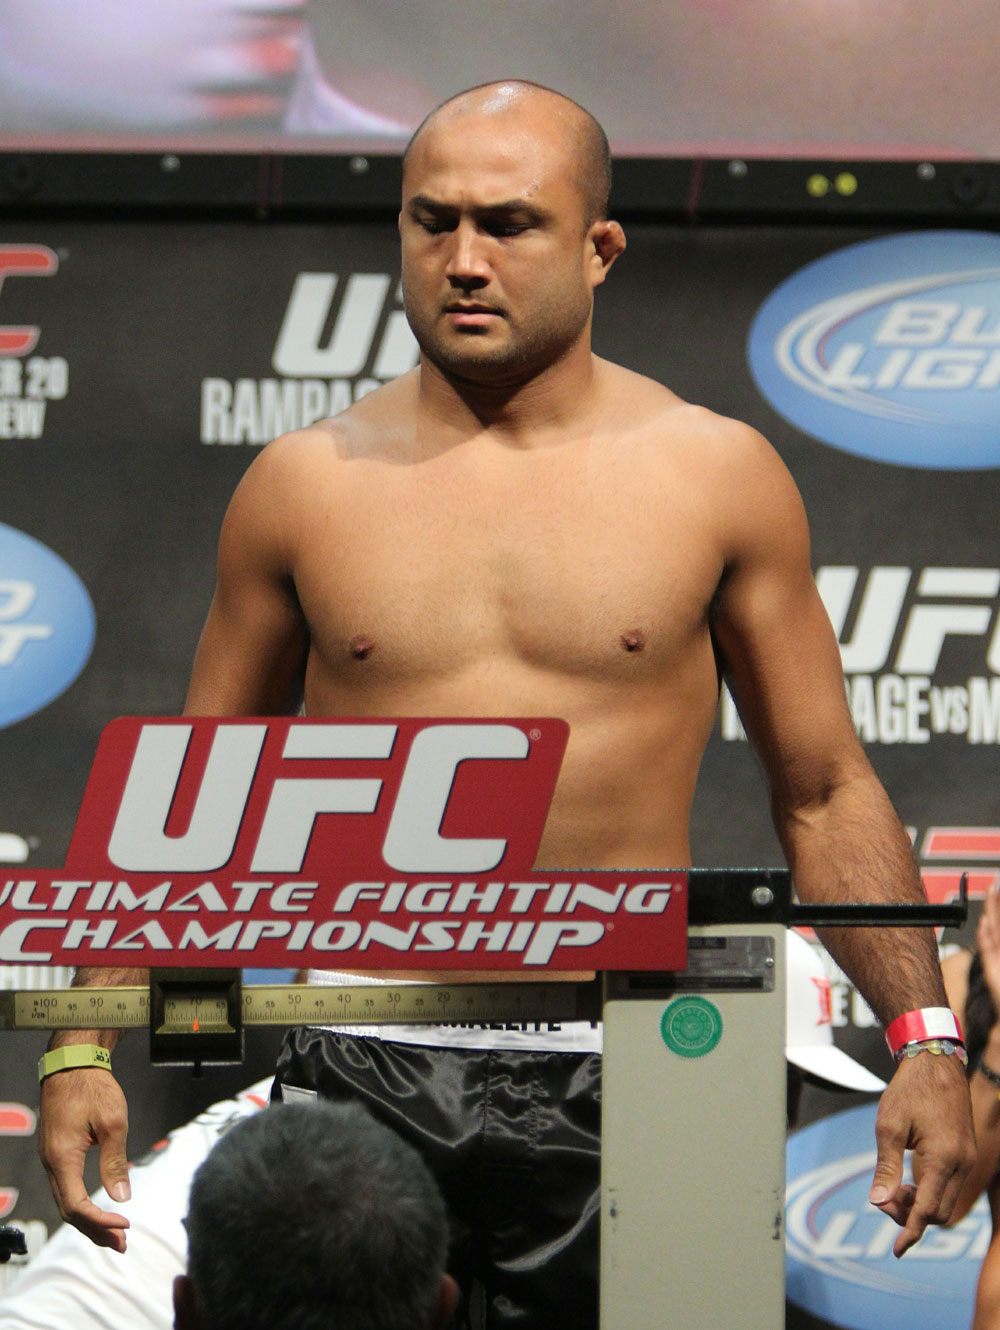 BJ Penn weighs in at 169 lbs at the UFC 123 weigh-in at the Palace of Auburn Hills on November 19, 2010 in Auburn Hills, Michigan.  (Photo by Josh Hedges/Zuffa LLC/Zuffa LLC via Getty Images)